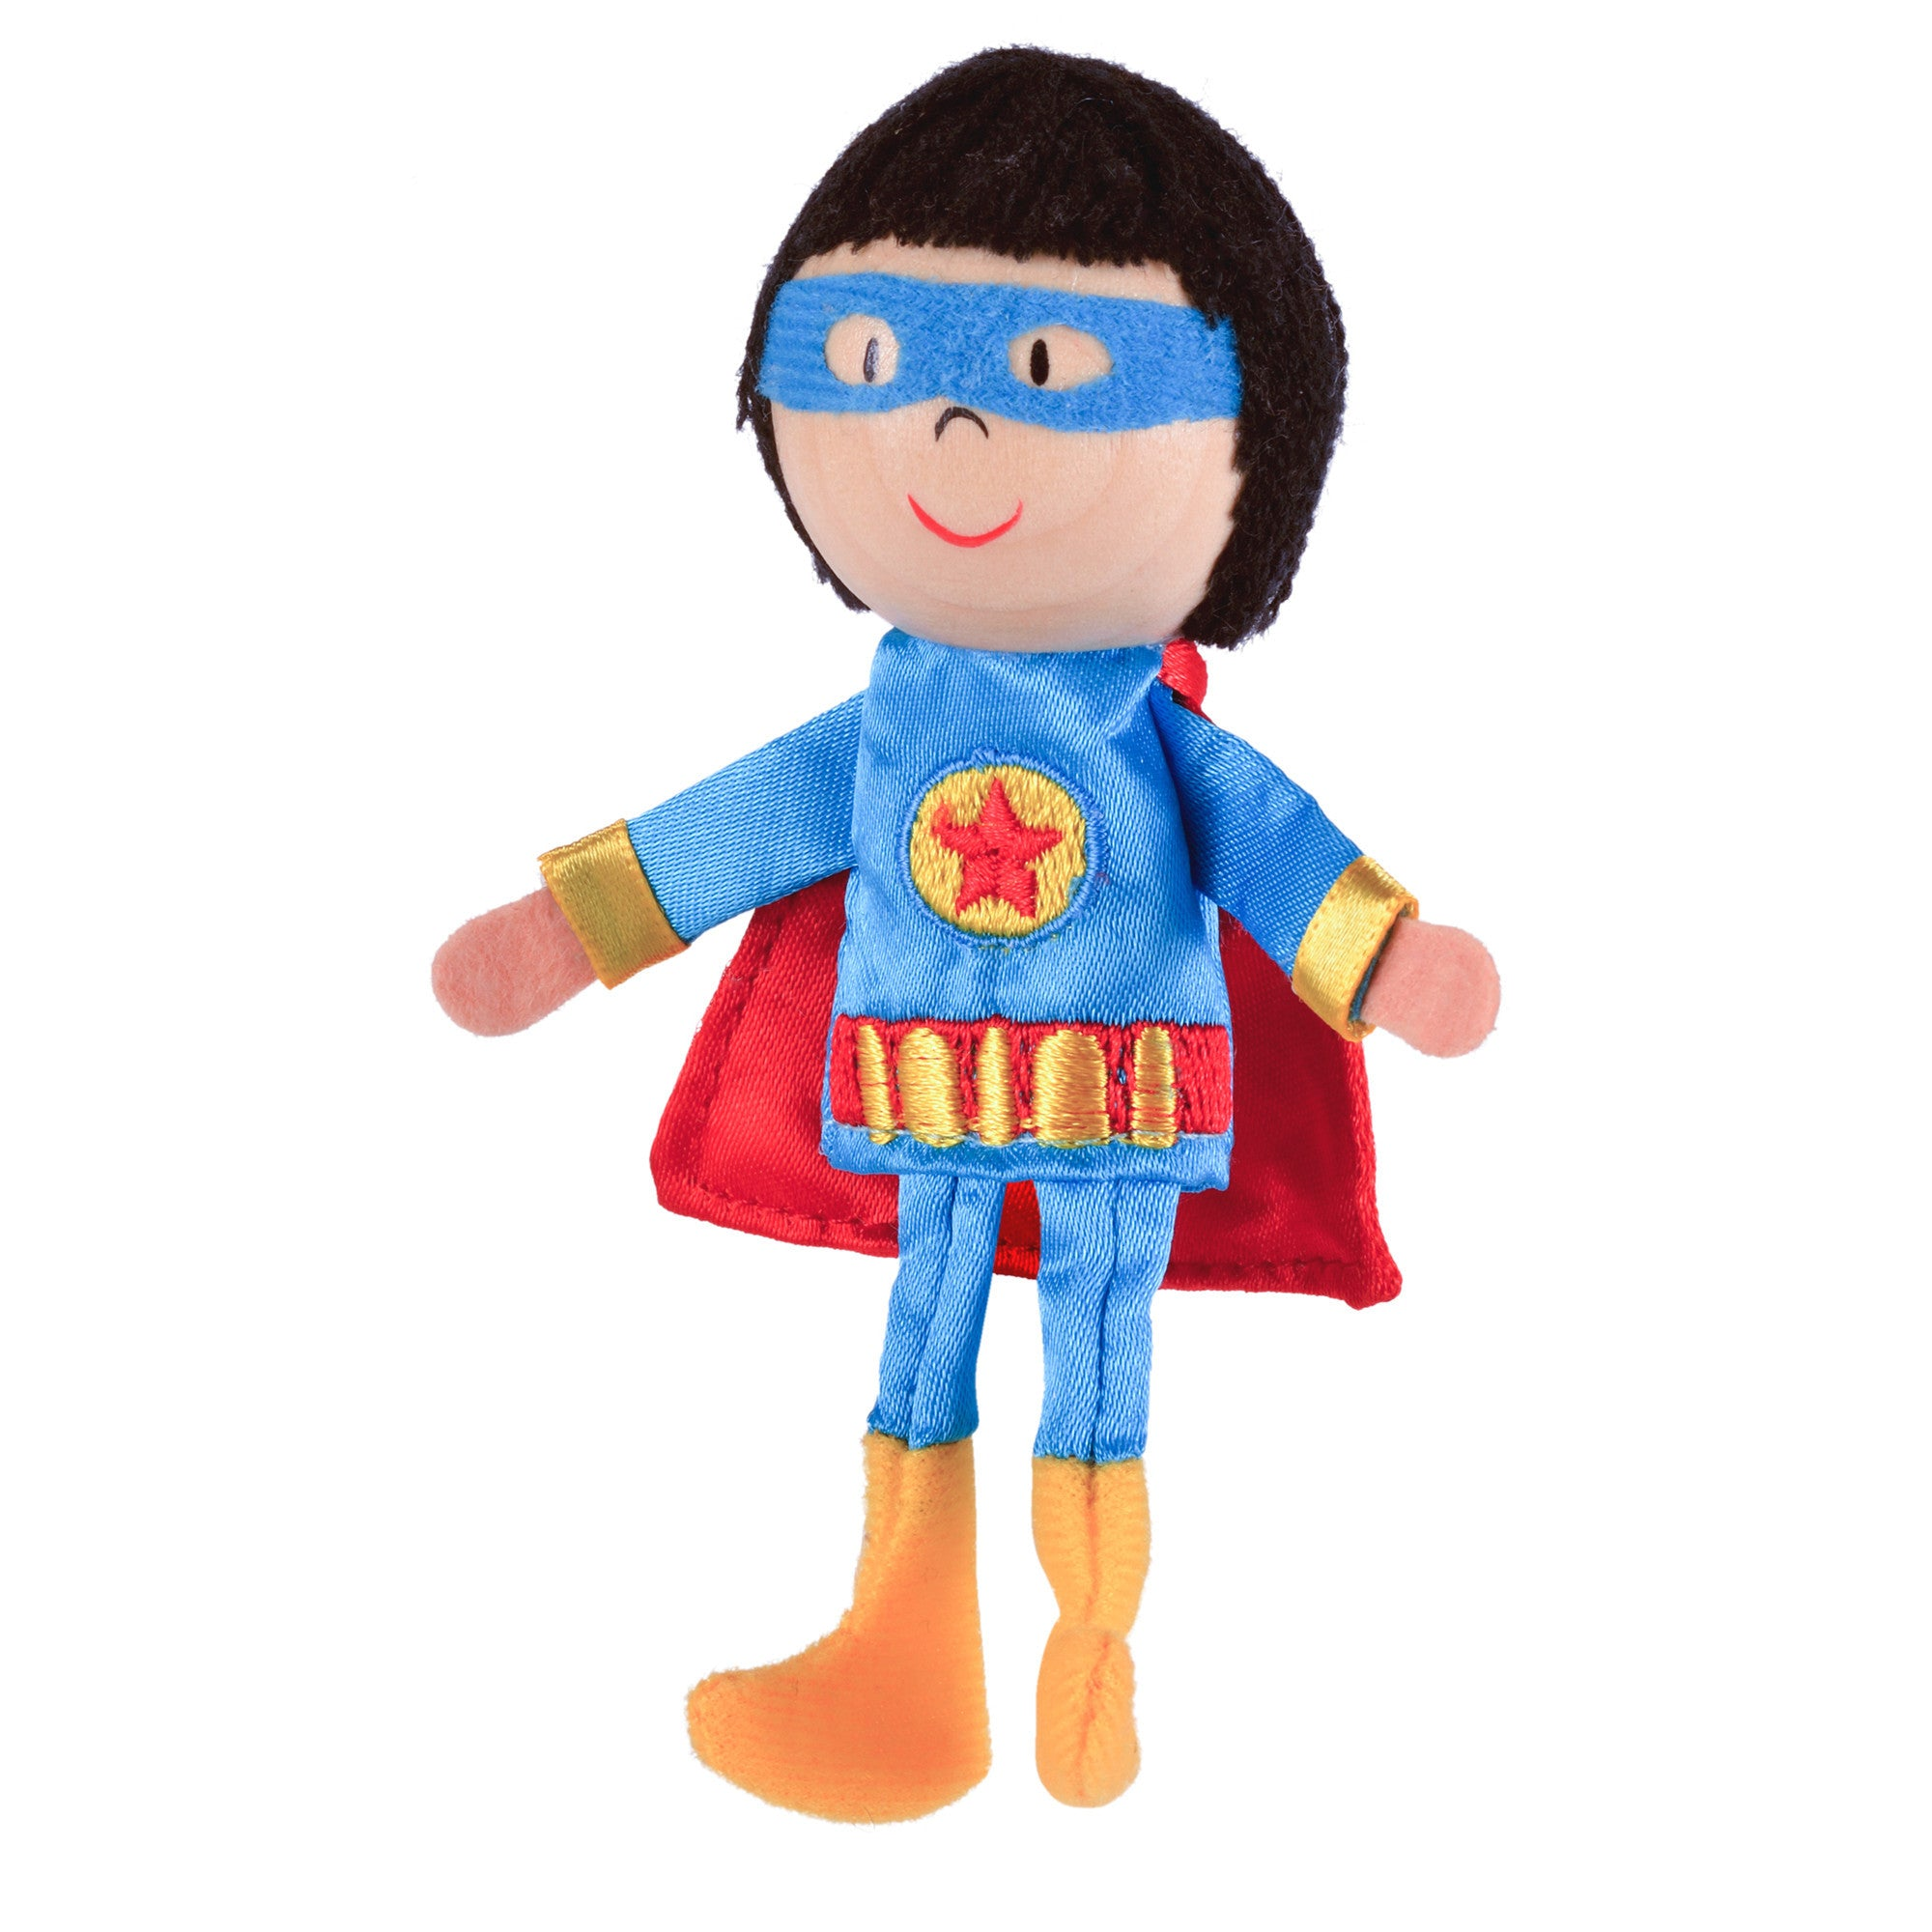 Superhero finger puppet full length